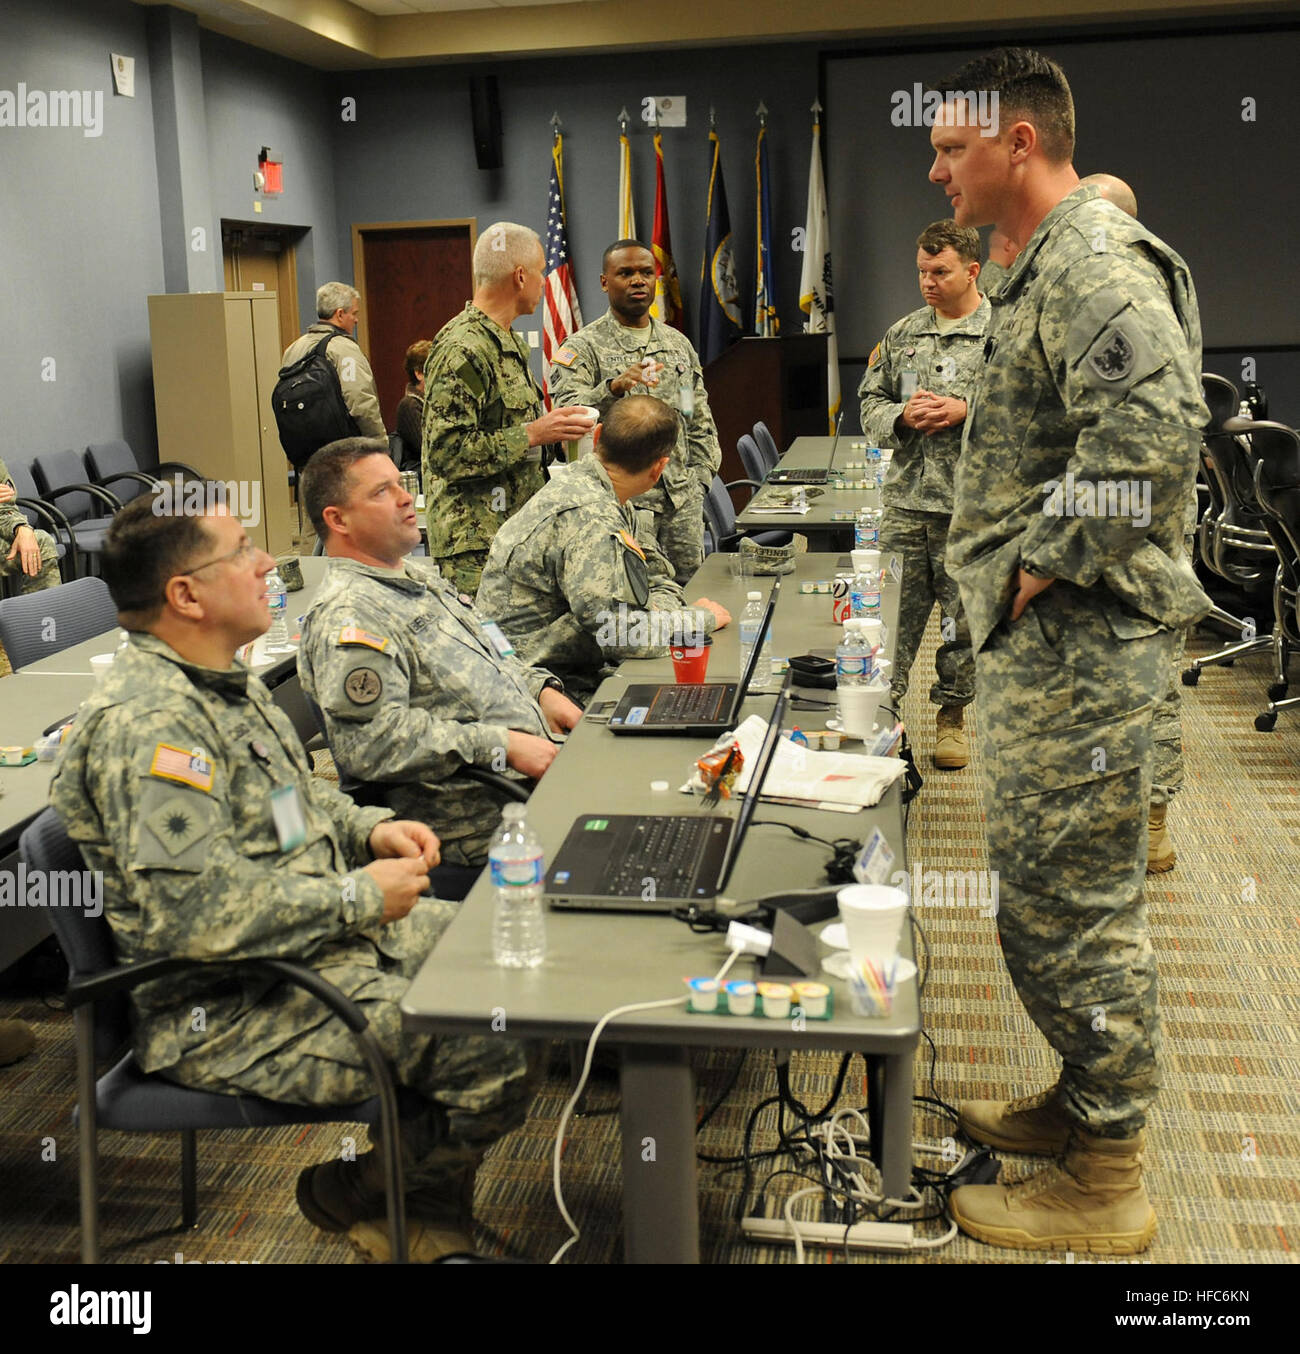 U.S. Army Lt. Col. Craig Benson, operations officer, 244th Aviation Brigade, speaks with his unit representatives - Stock Image